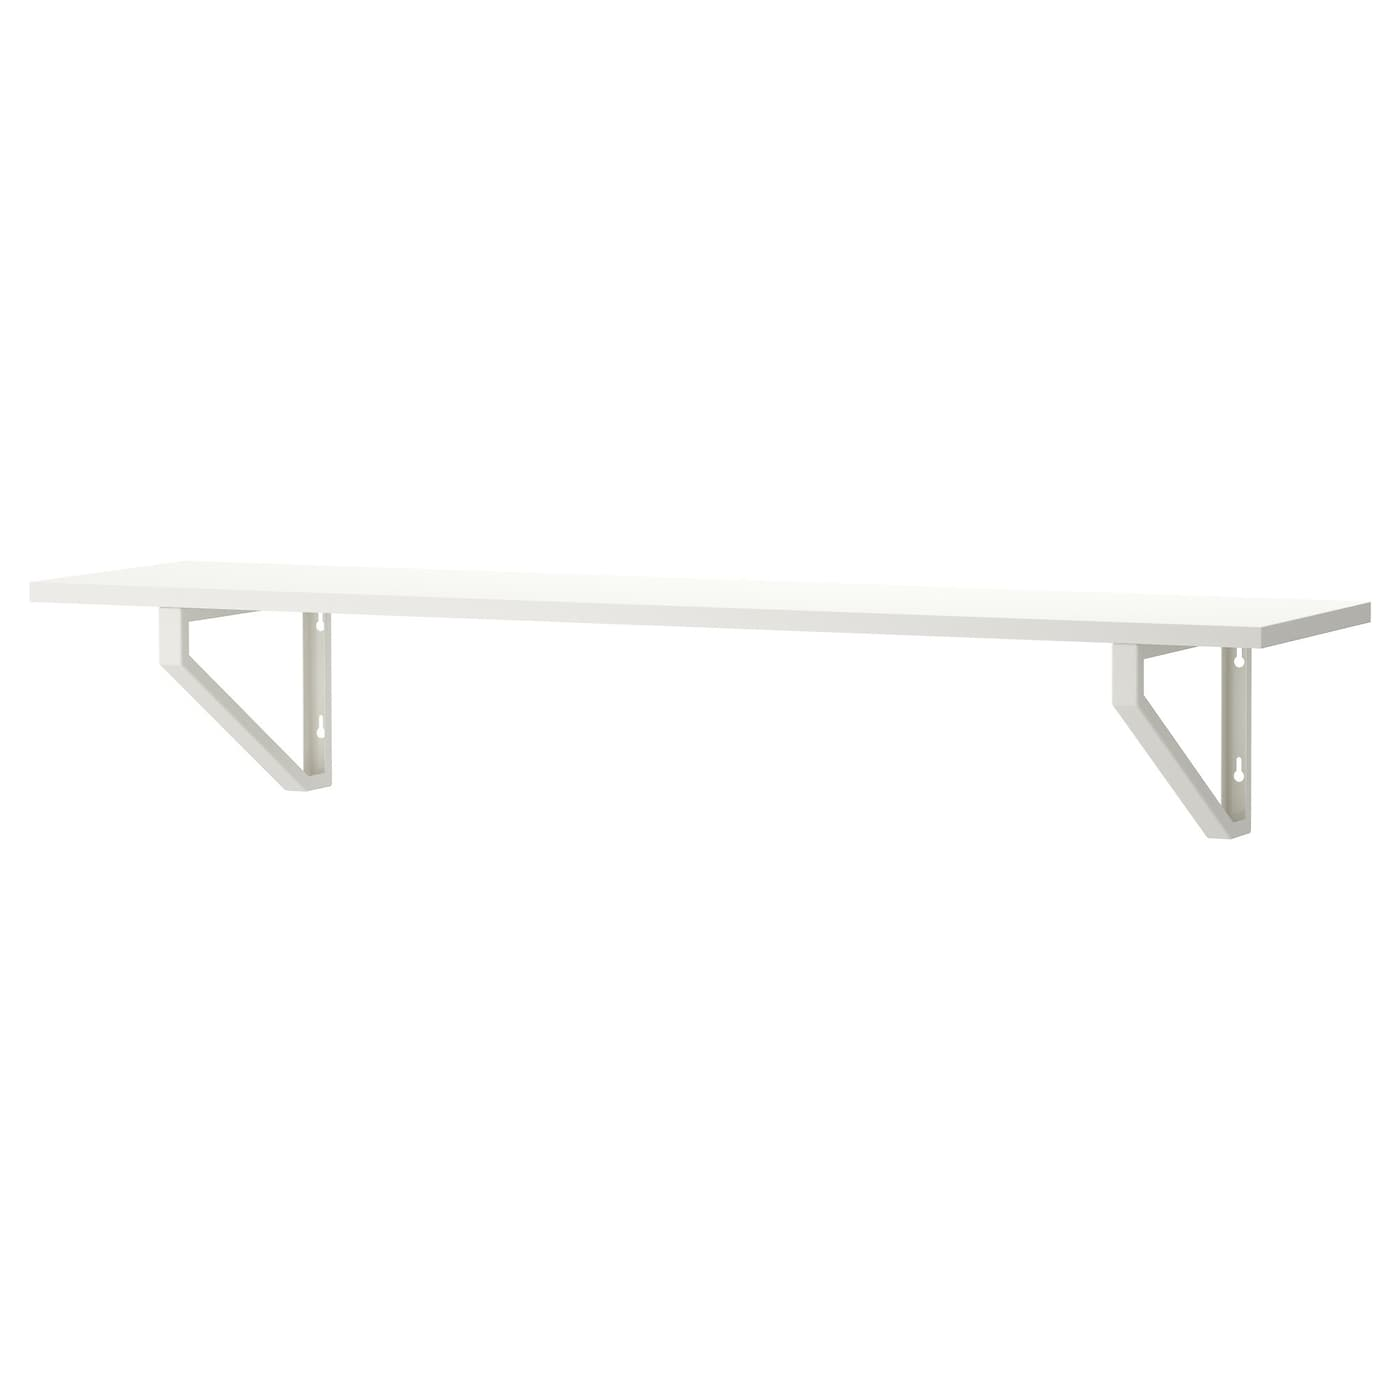 Floating shelves wall shelves shelf brackets ikea - Tablette de lit ikea ...